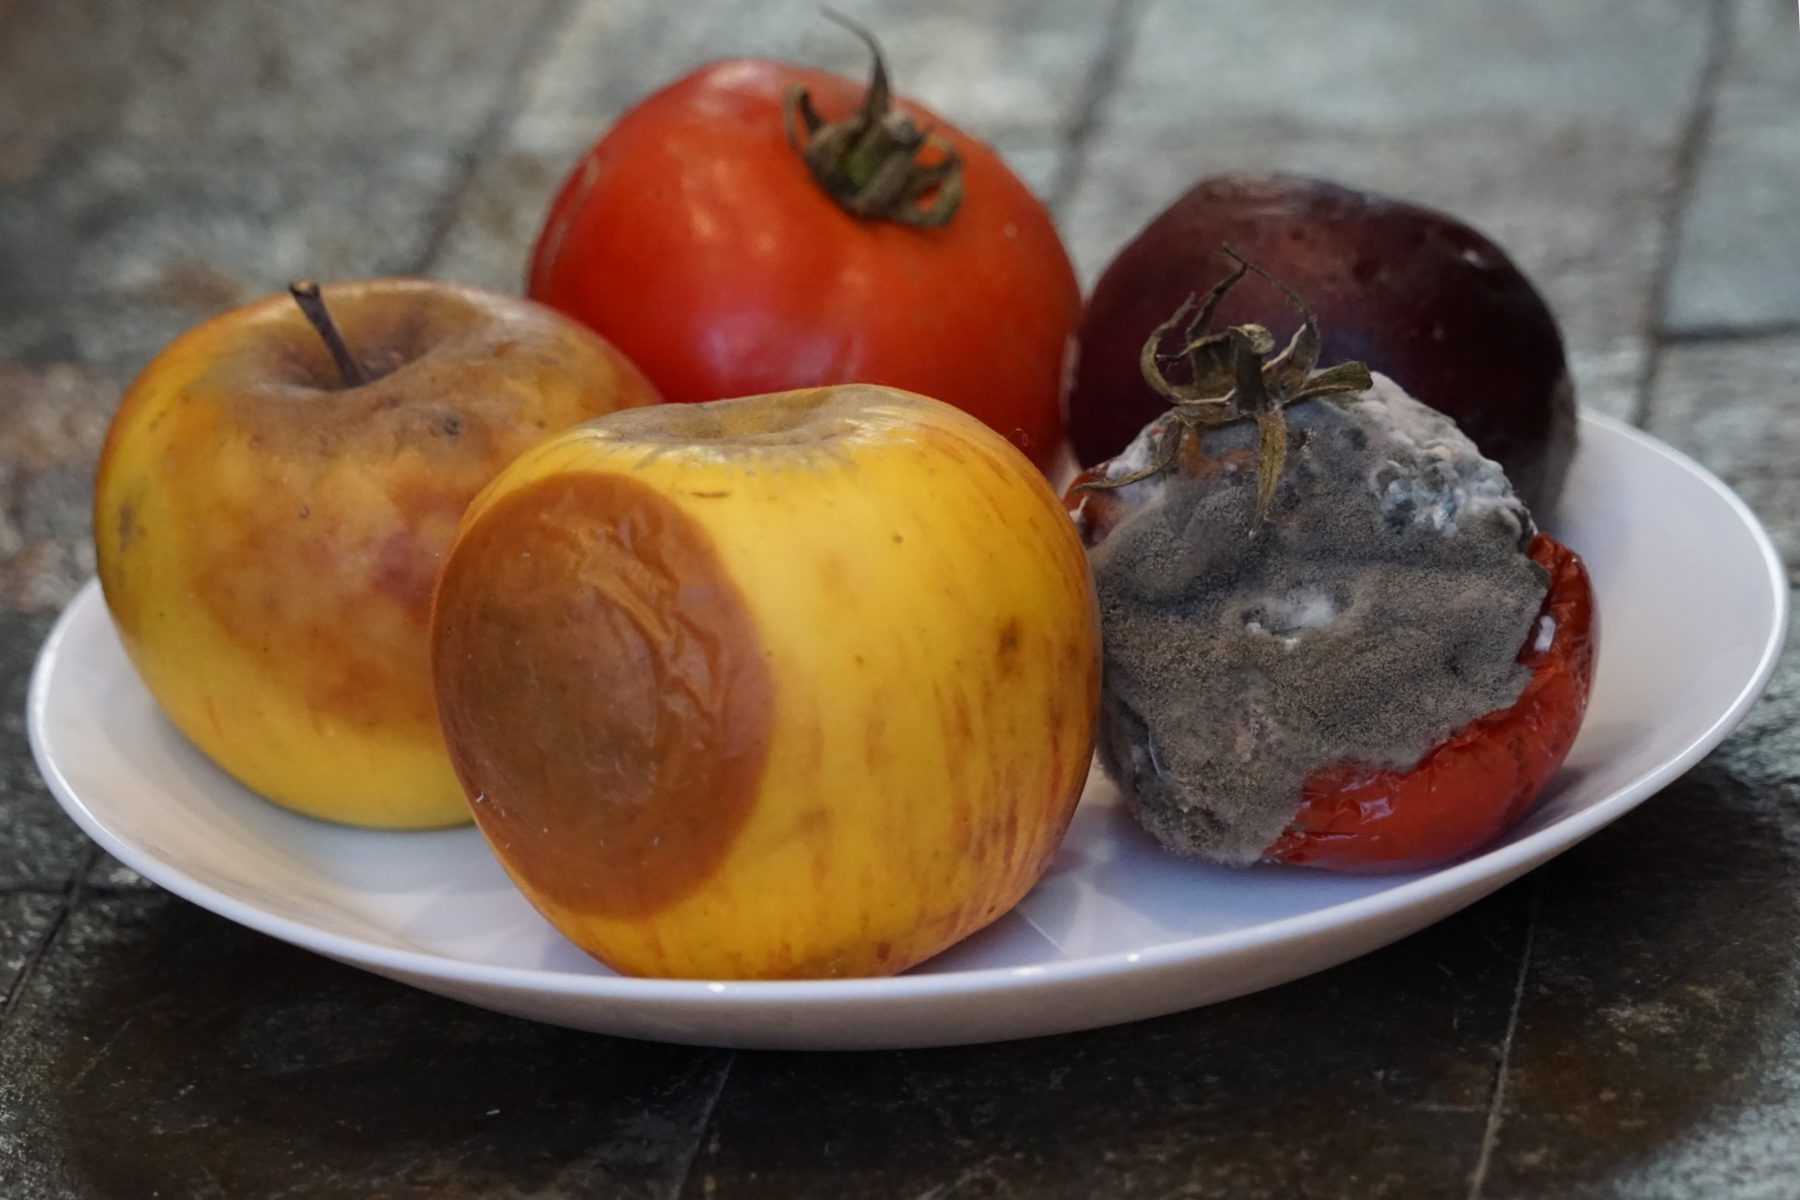 A plate with molding food like apples, prunes and tomato.